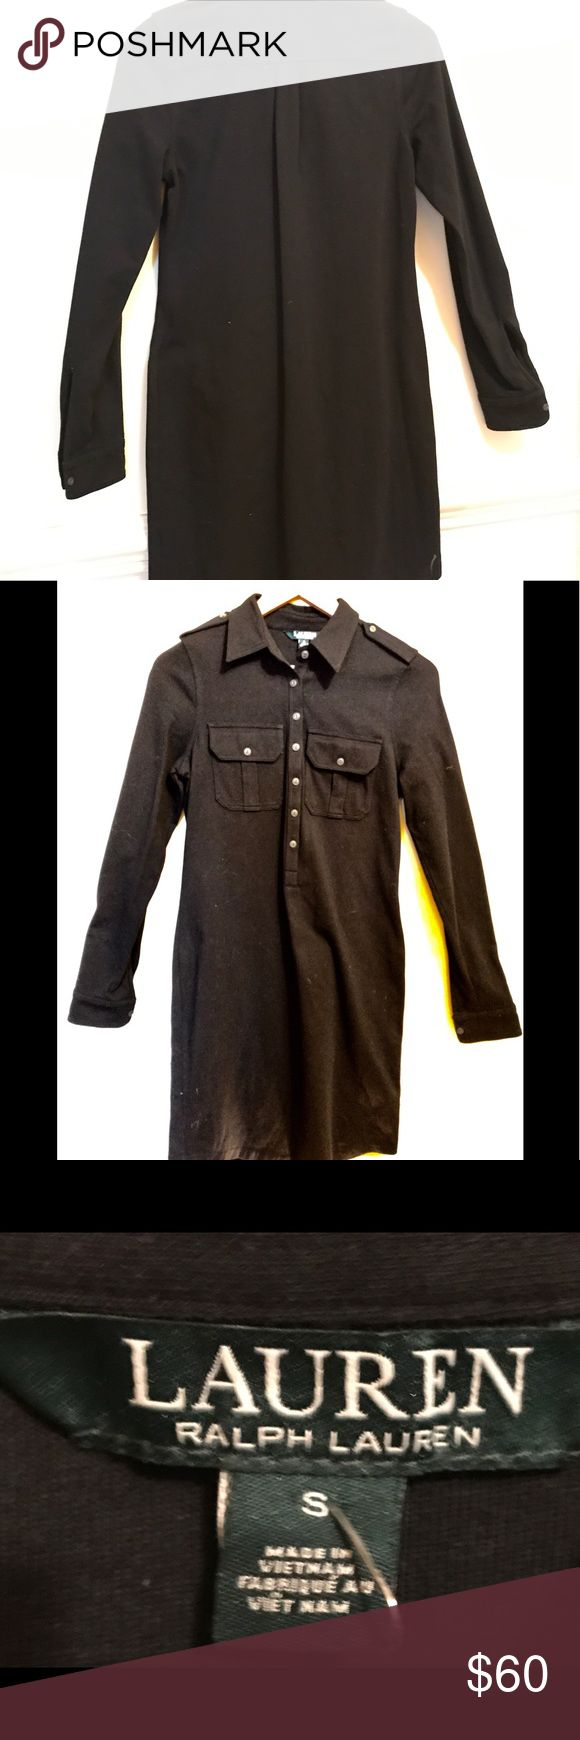 NWOT Ralph Lauren black shirt dress Never worn, beautifully cut, detailed & stitched black Ralph Lauren shirt dress.  Falls just below knee, long cuffed sleeves, shaped at waist. Softest medium weight 100% cotton, fits like a 2 or small 4. Perfect for work or casual, with or without a belt (not included) Ralph Lauren Dresses Long Sleeve